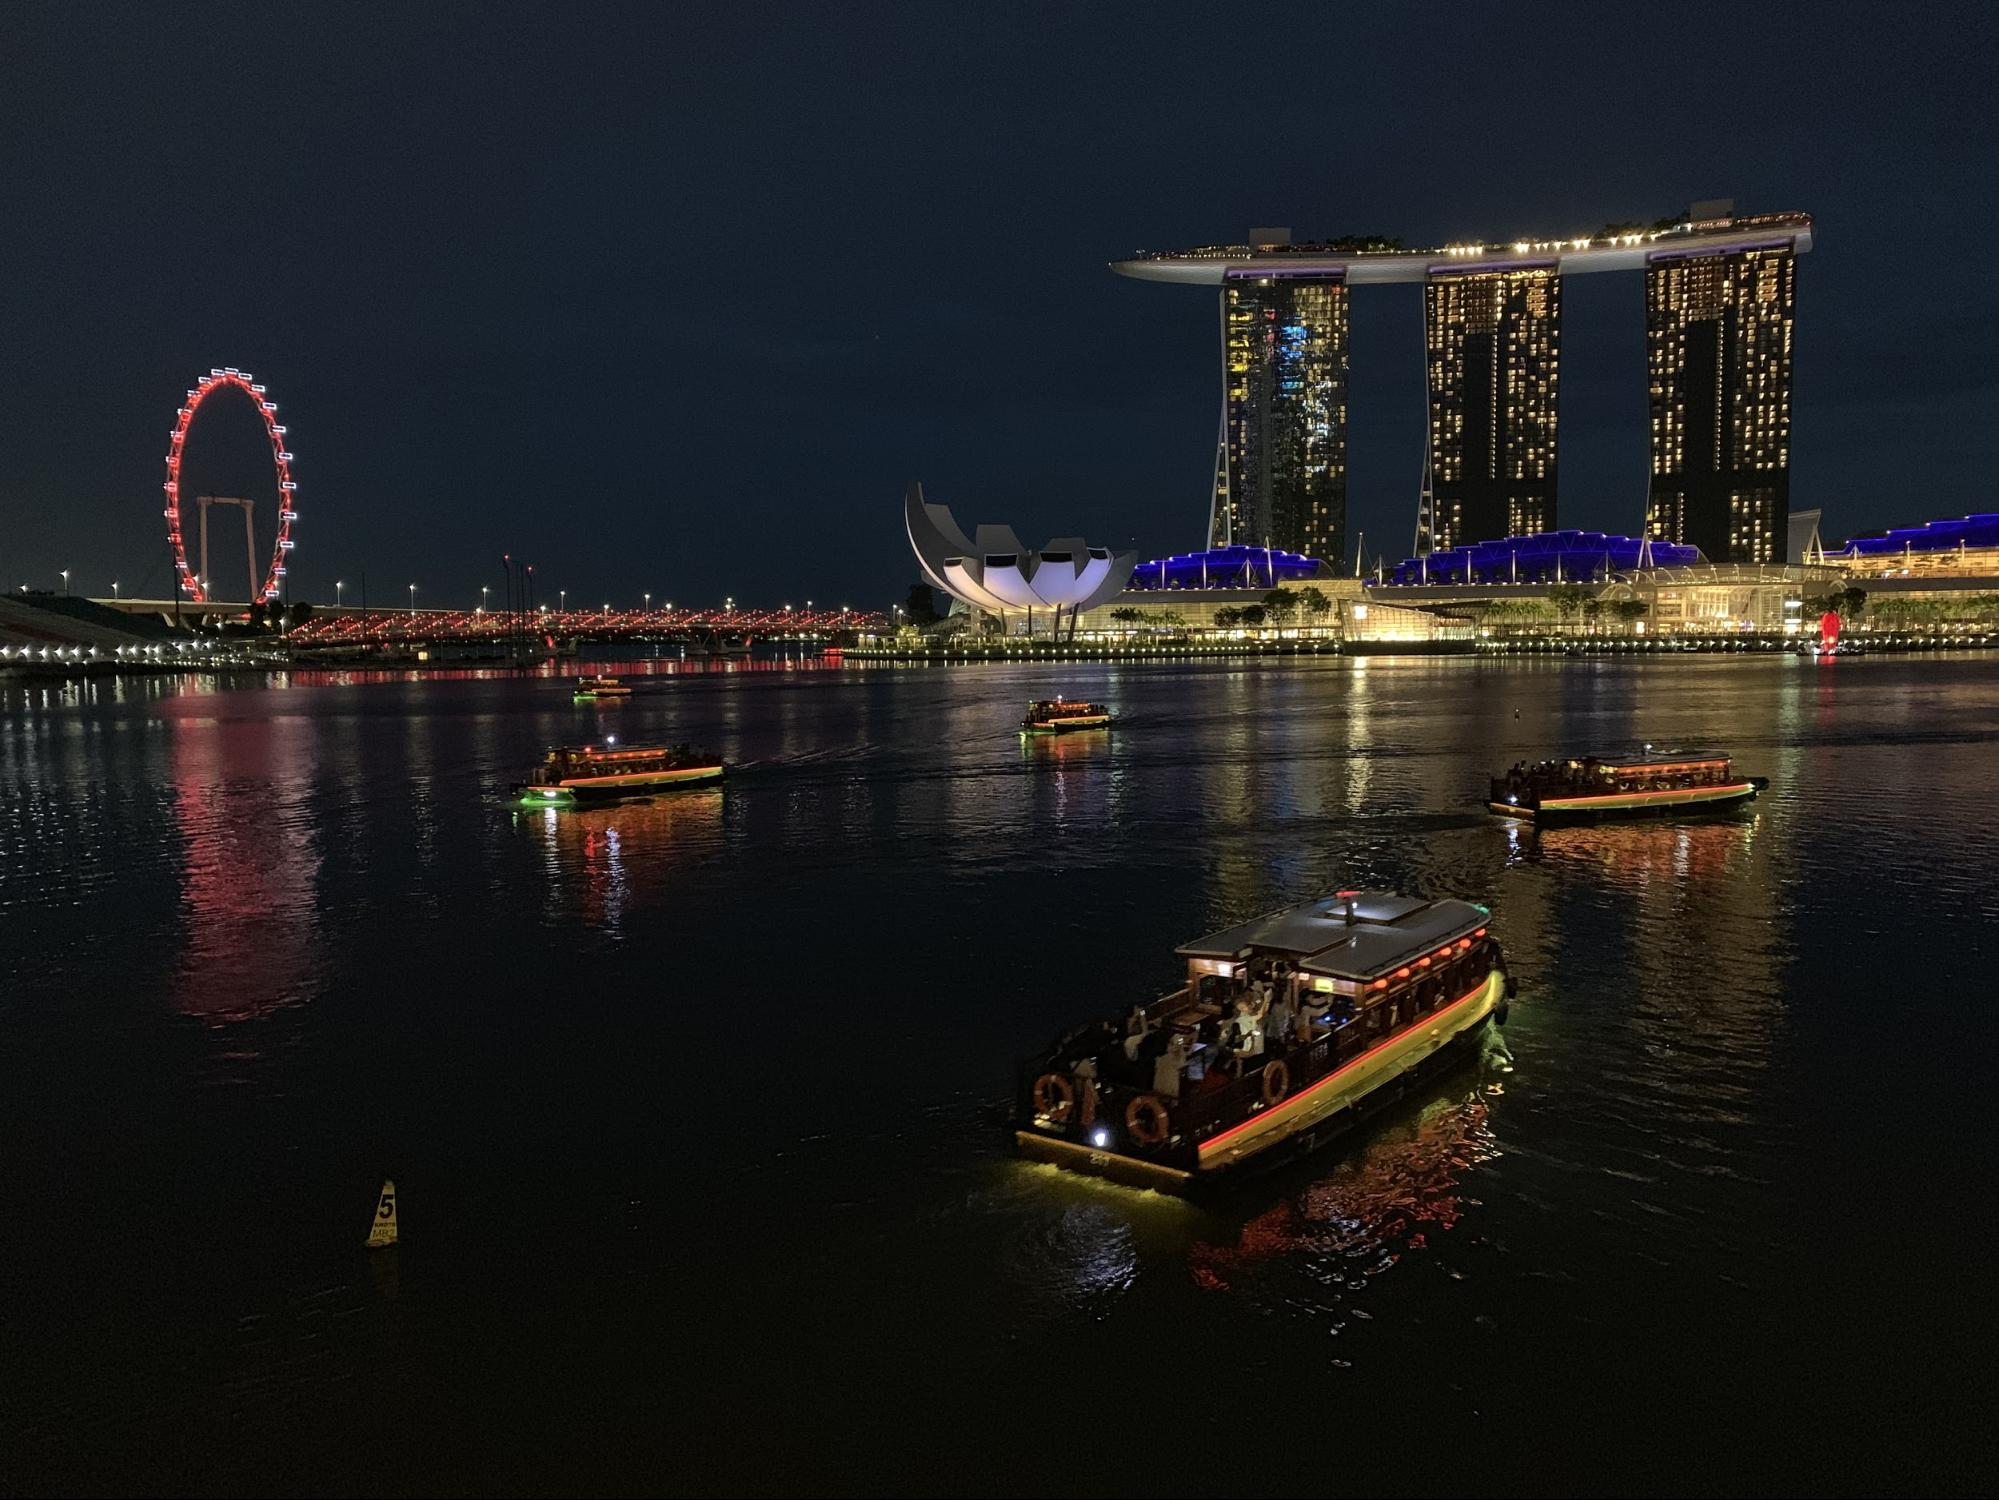 Southeast Asia photo of lake with illuminated boats